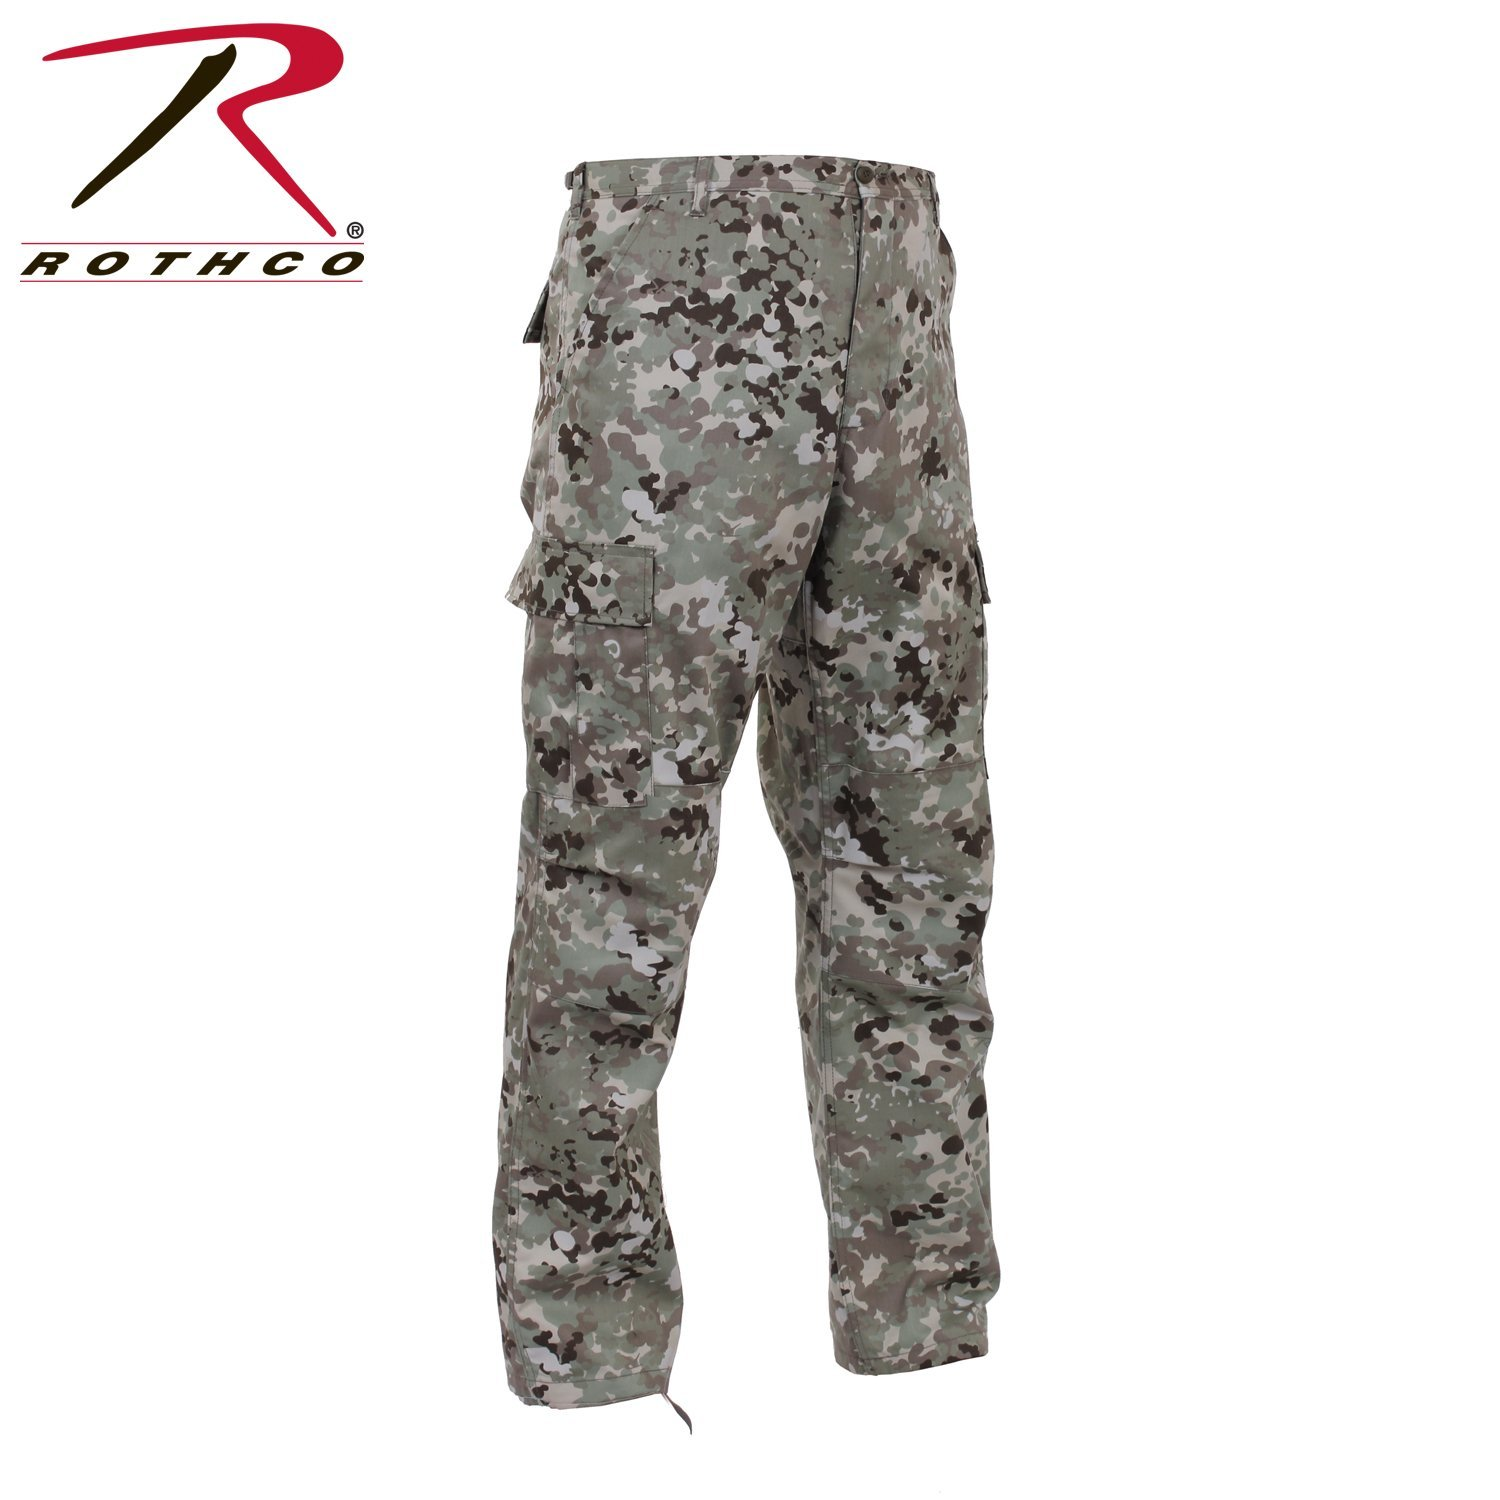 Rothco Camo Tactical BDU Pants - Total Terrain Camo, X-Large